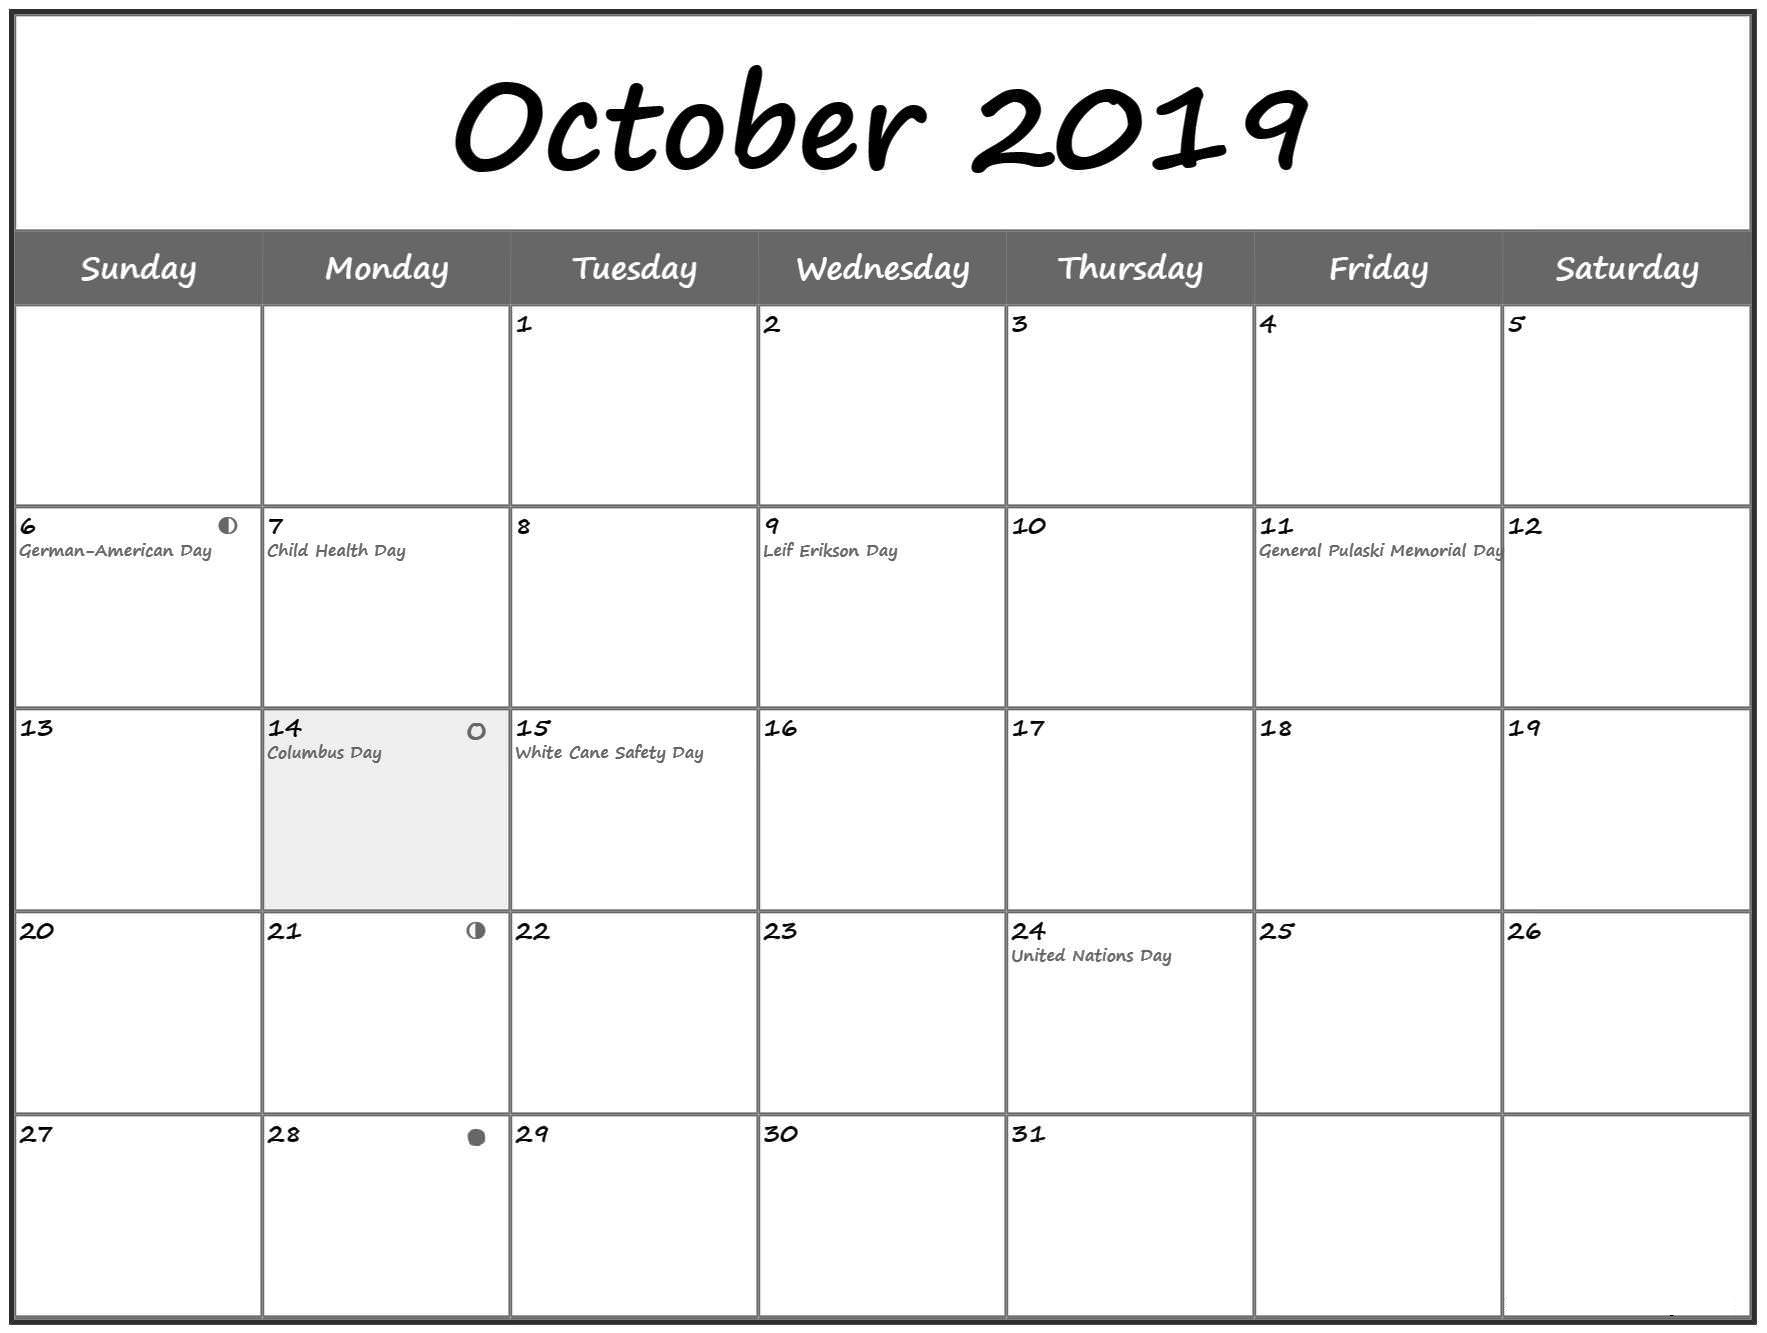 October 2019 Calendar With Holidays Printable With Notes inside Free Printable Scary October Calendar 2019